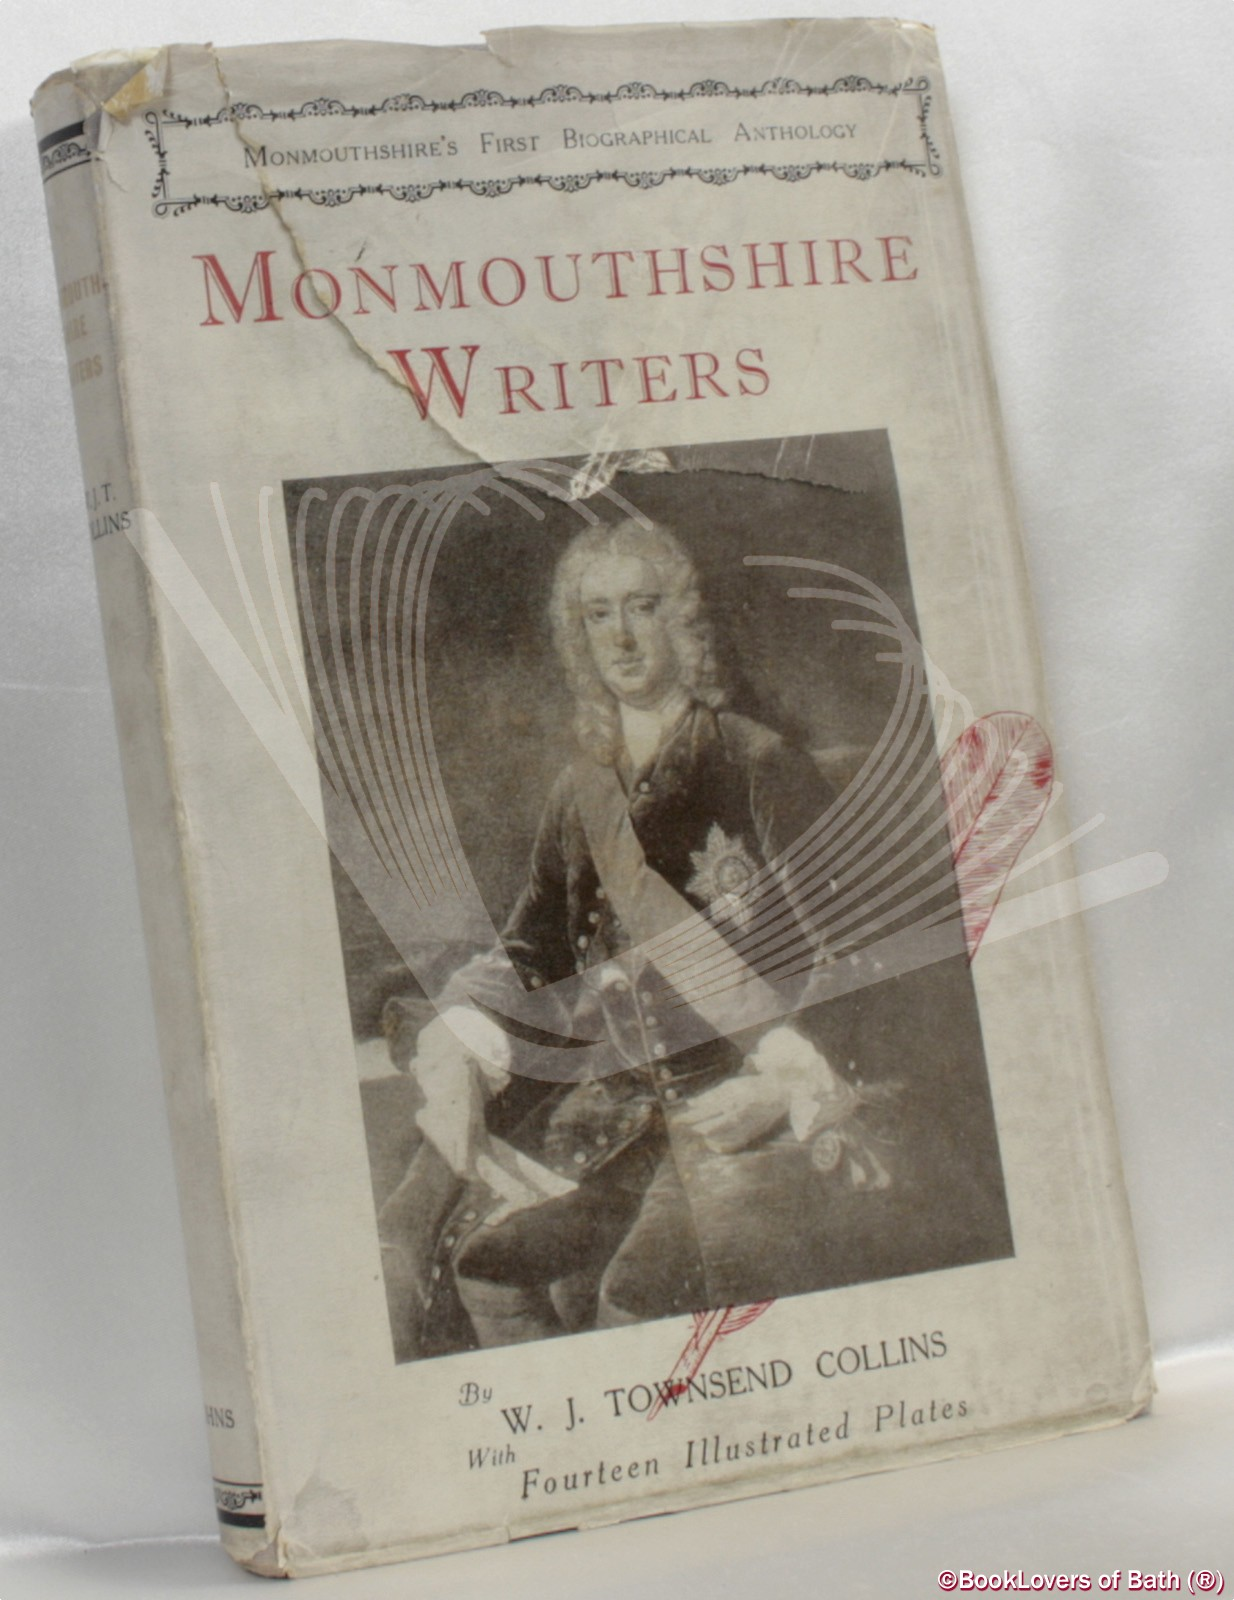 Monmouthshire Writers: A Literary History and Anthology - W. J. [William John] Townsend Collins